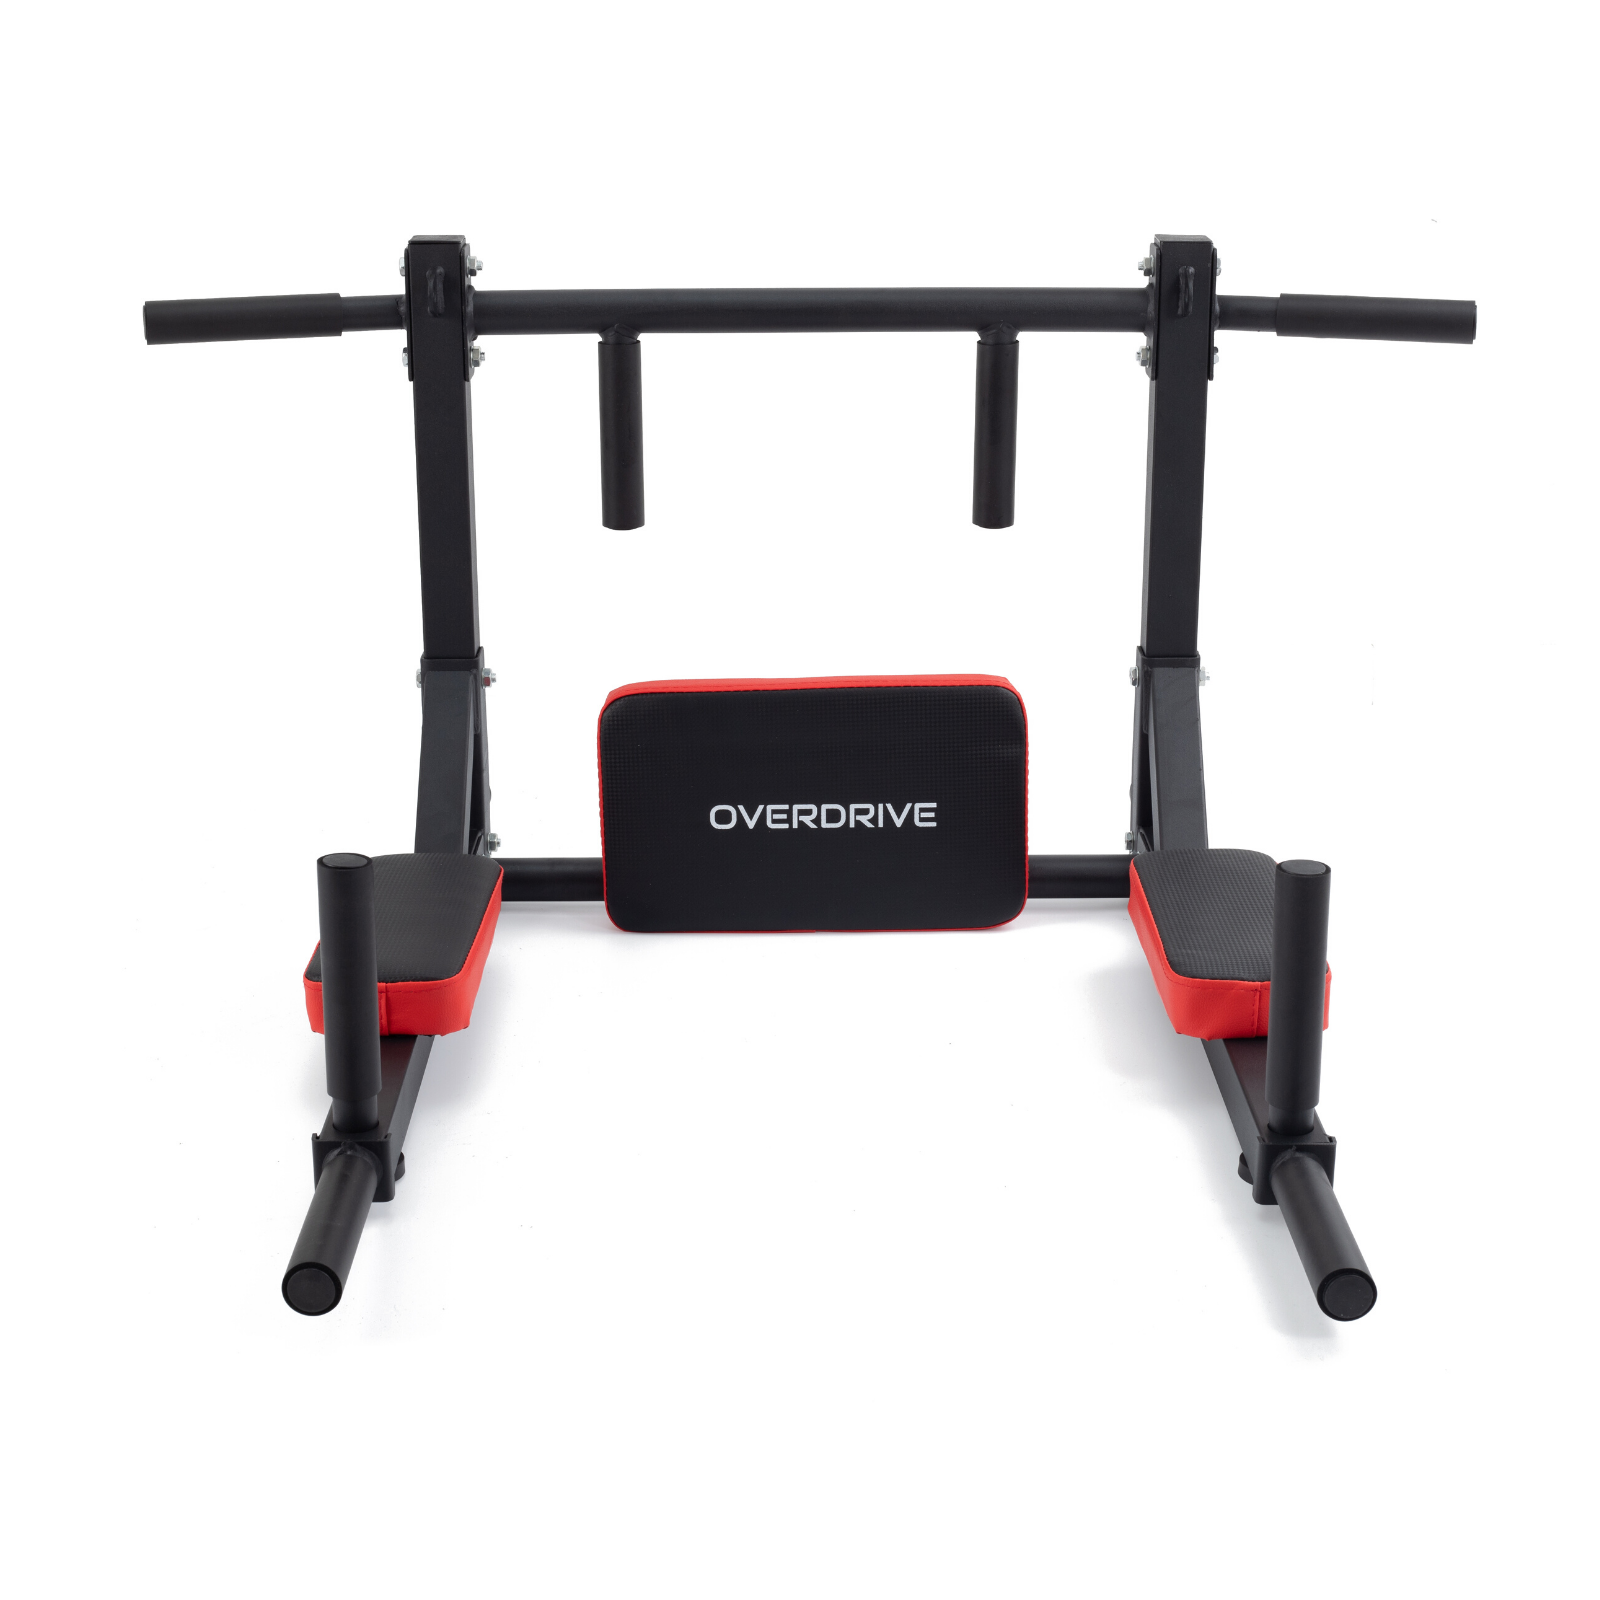 Multi Grip Wall Mounted Pull Up Bar And Dip Station Overdrive Sports Overdrive Sports